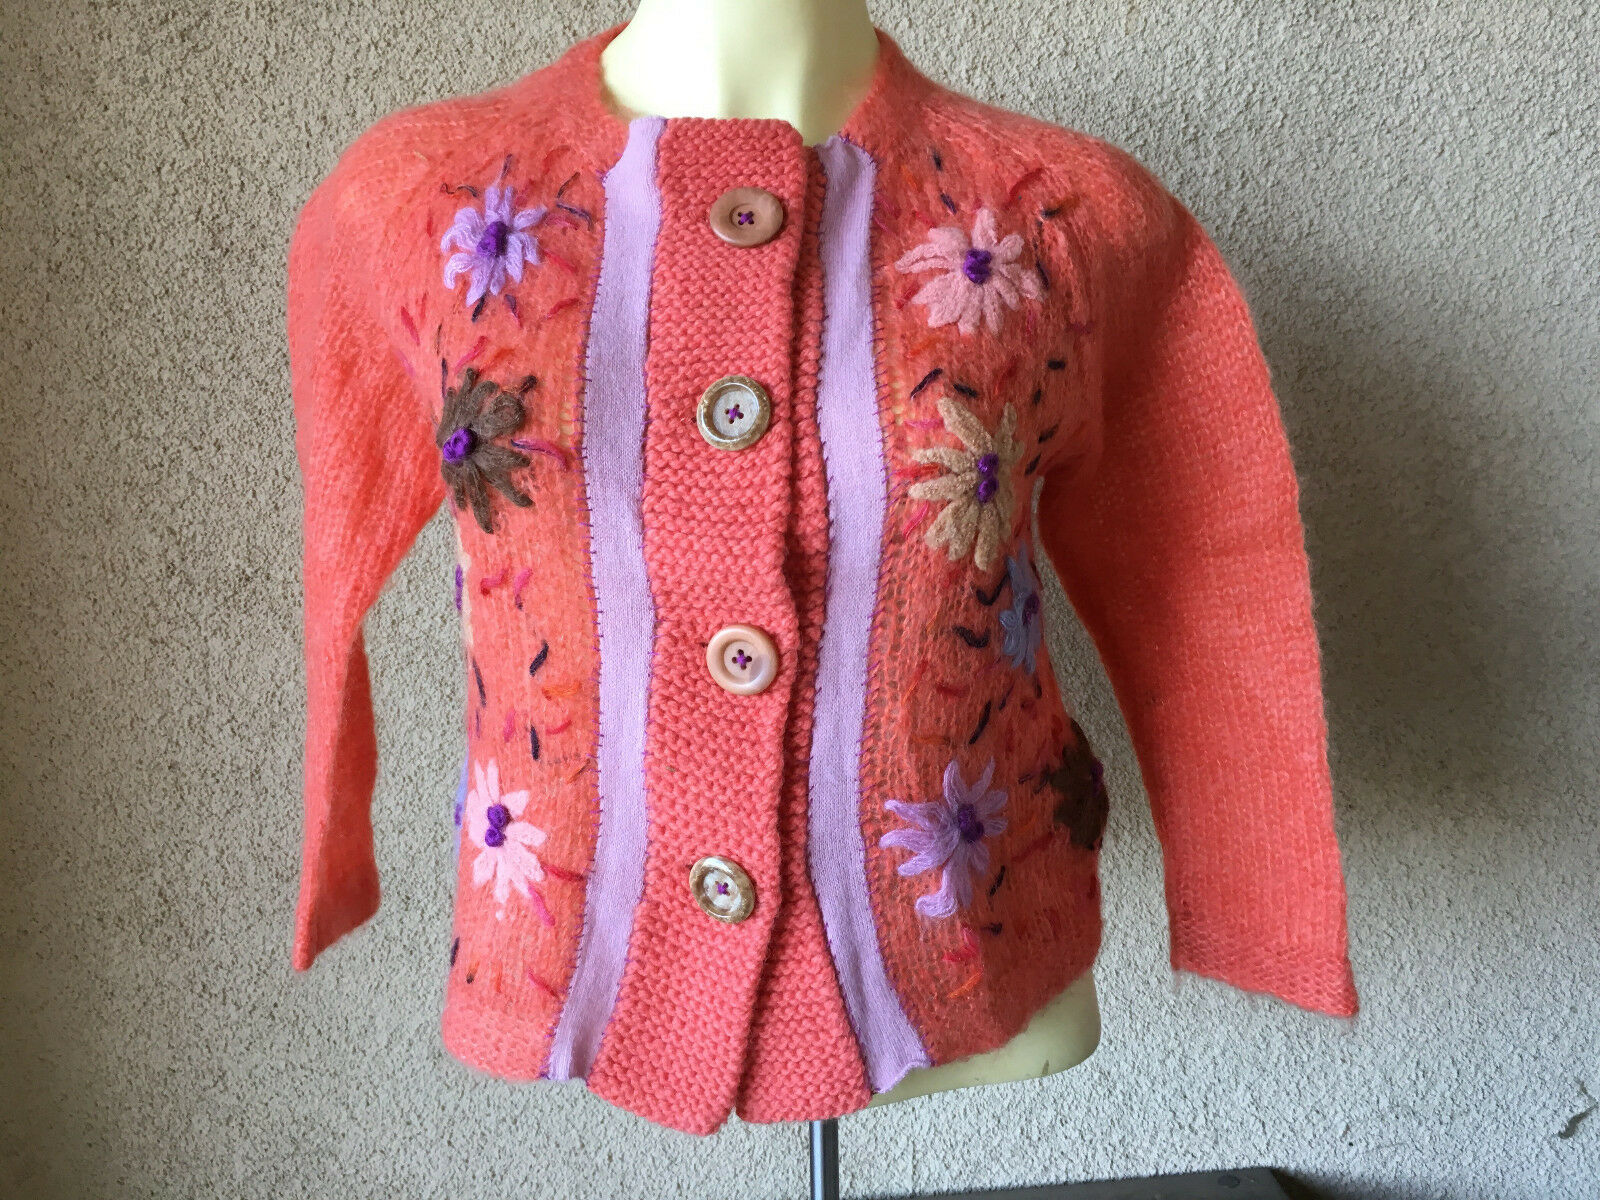 Free People People People Cardigan Sweater Embroidered Floral Design orange Shrug 4 Buttons 6c6948